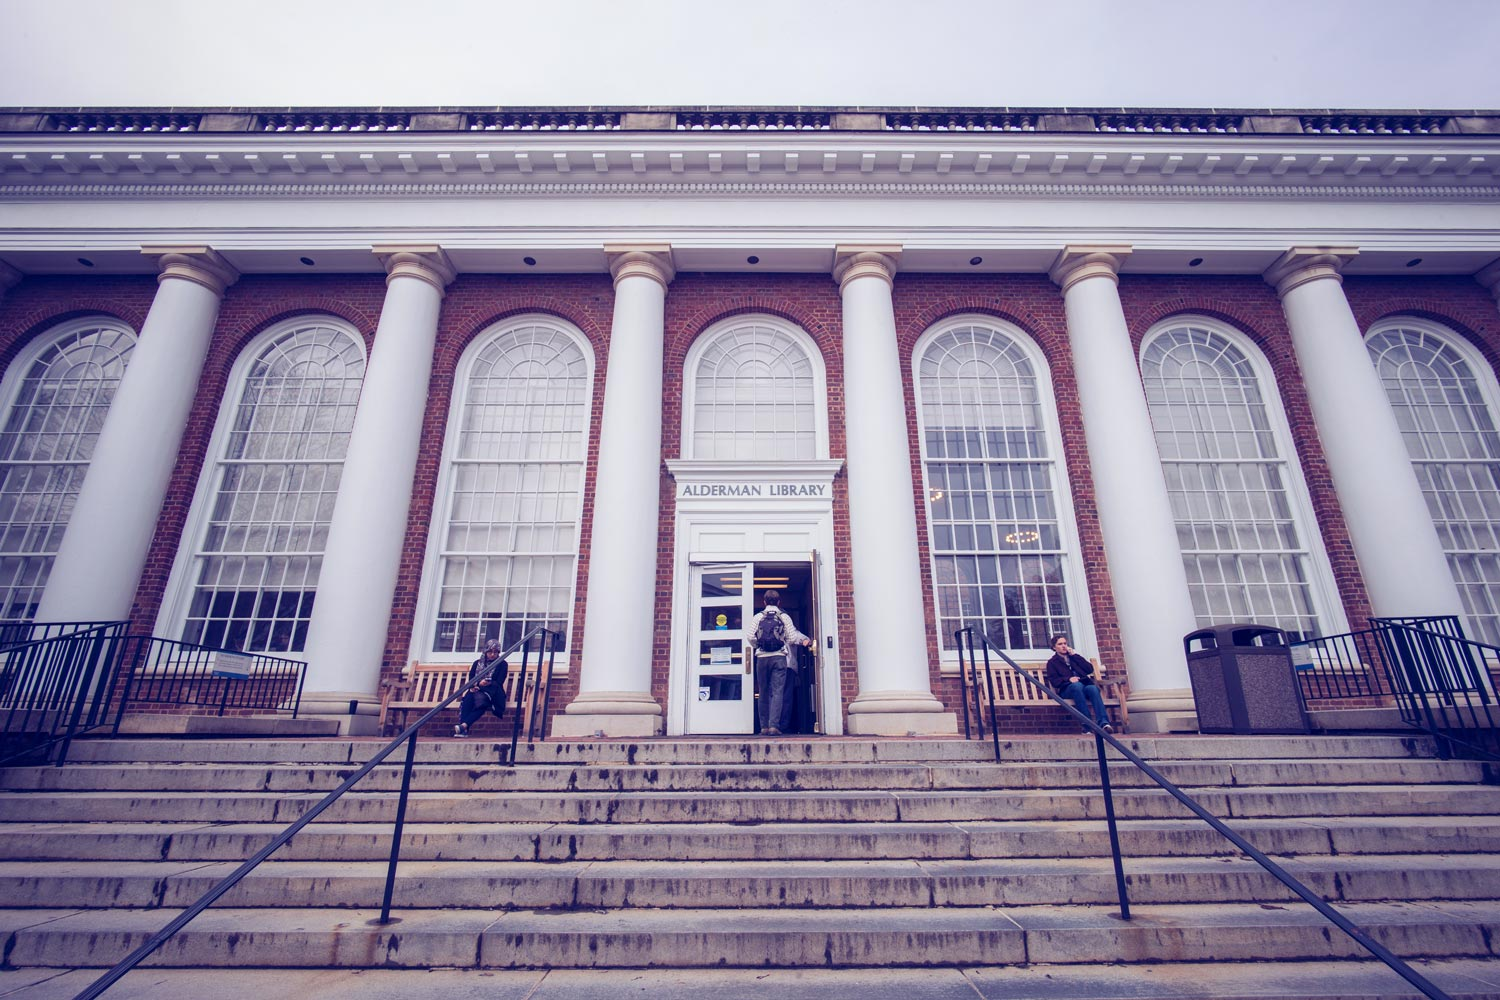 Alderman Library is scheduled to undergo a major renovation in the near future.